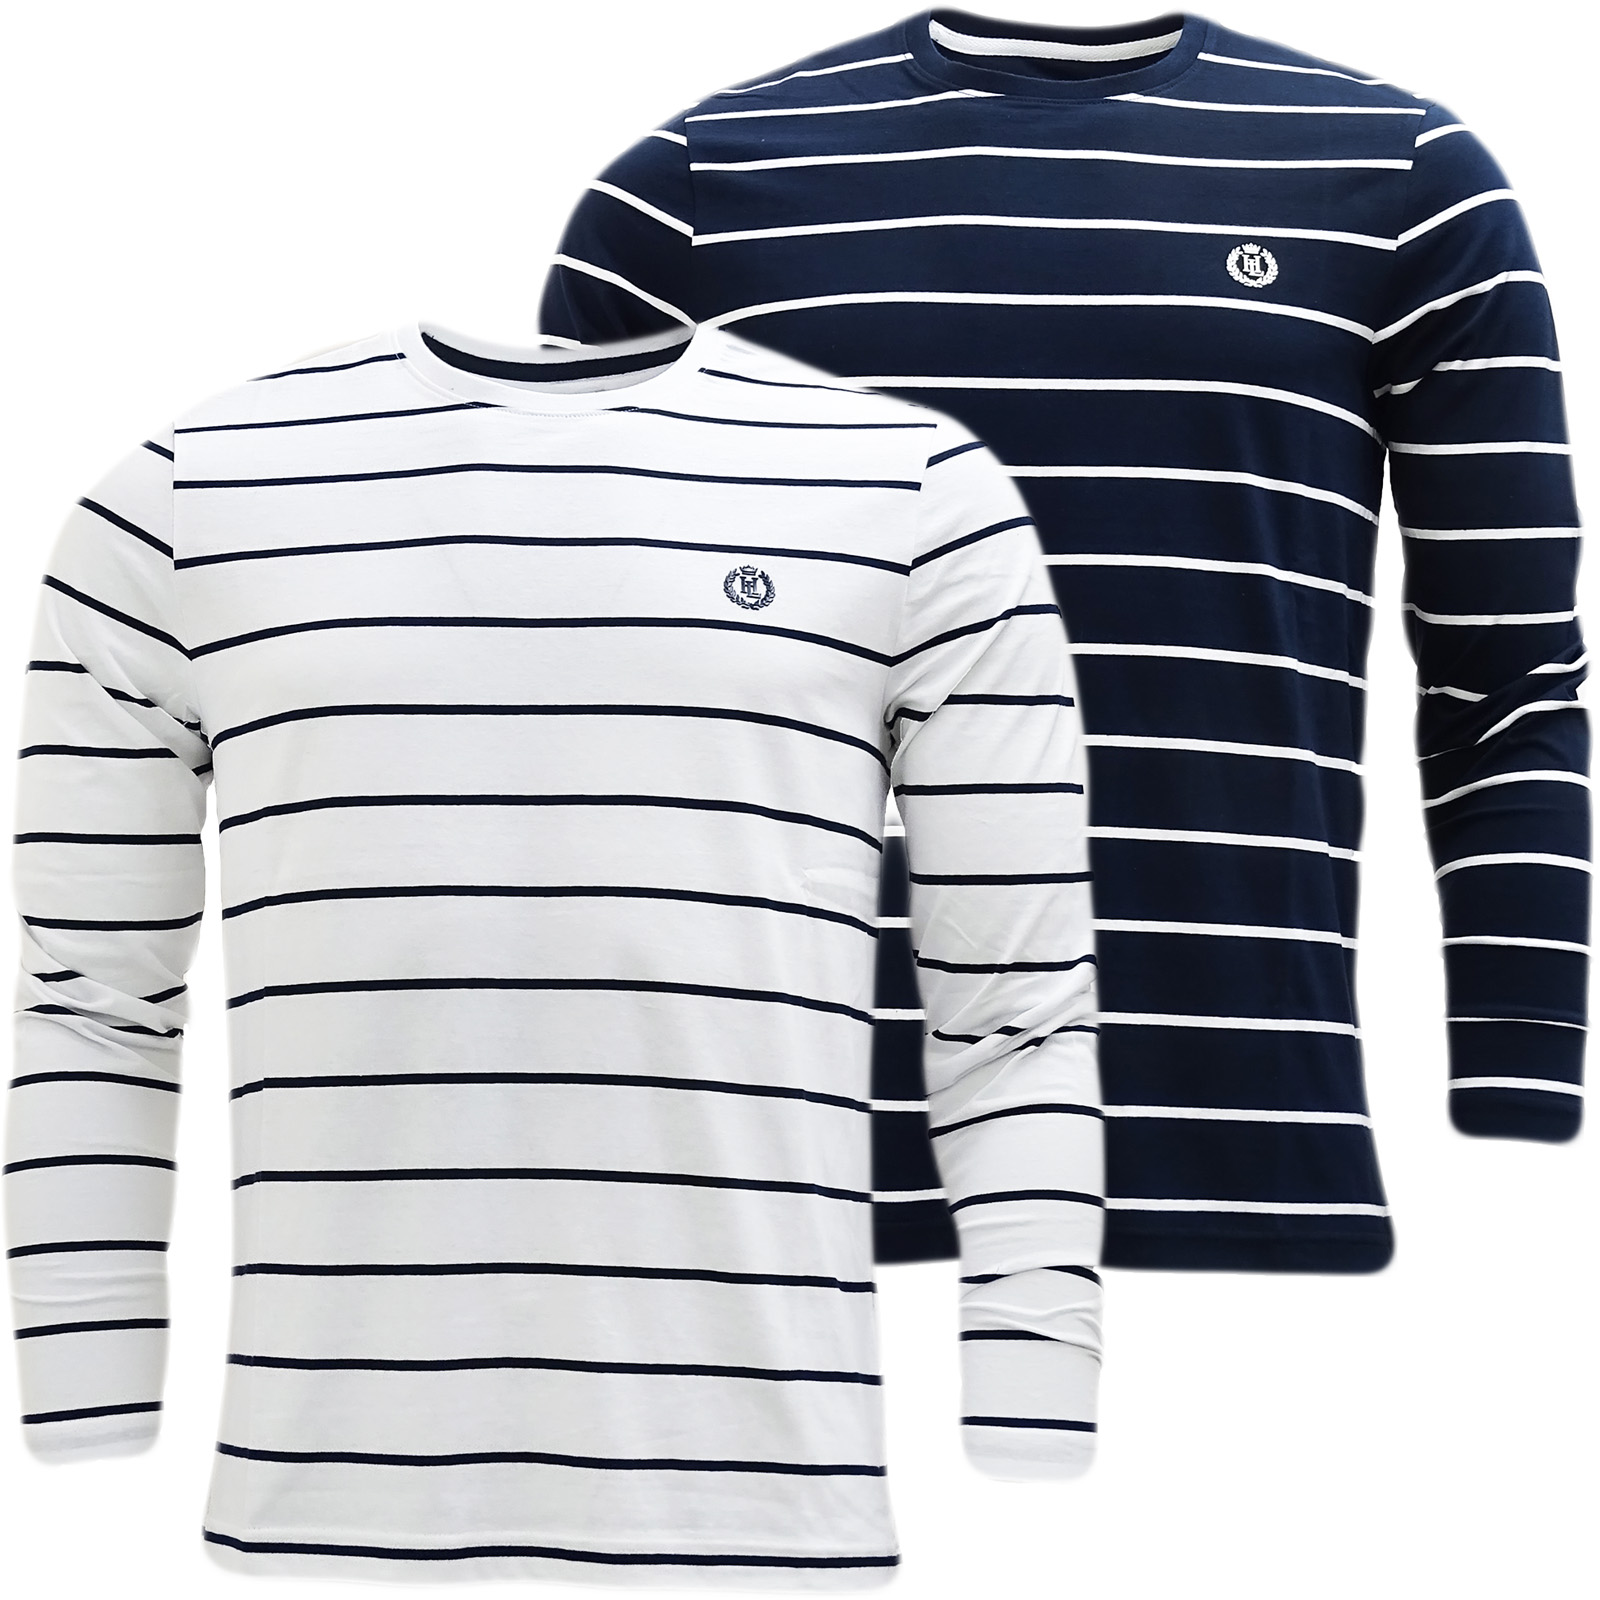 Henri Lloyd Striped Long Sleeve T-Shirt Bretton